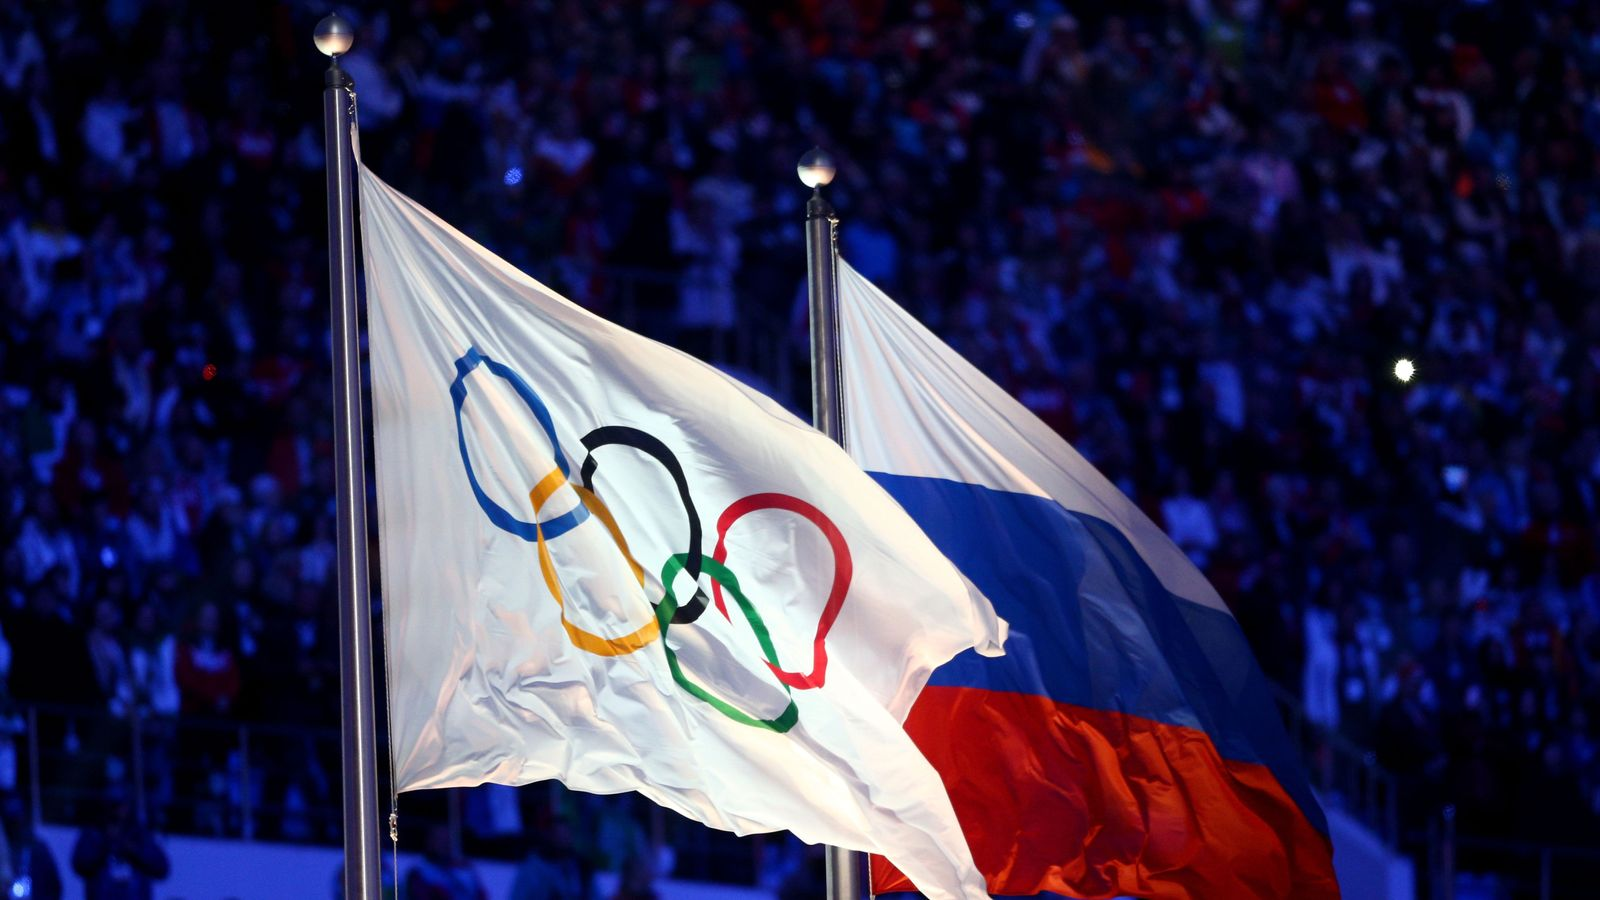 doping scandal russian sport is running out of road